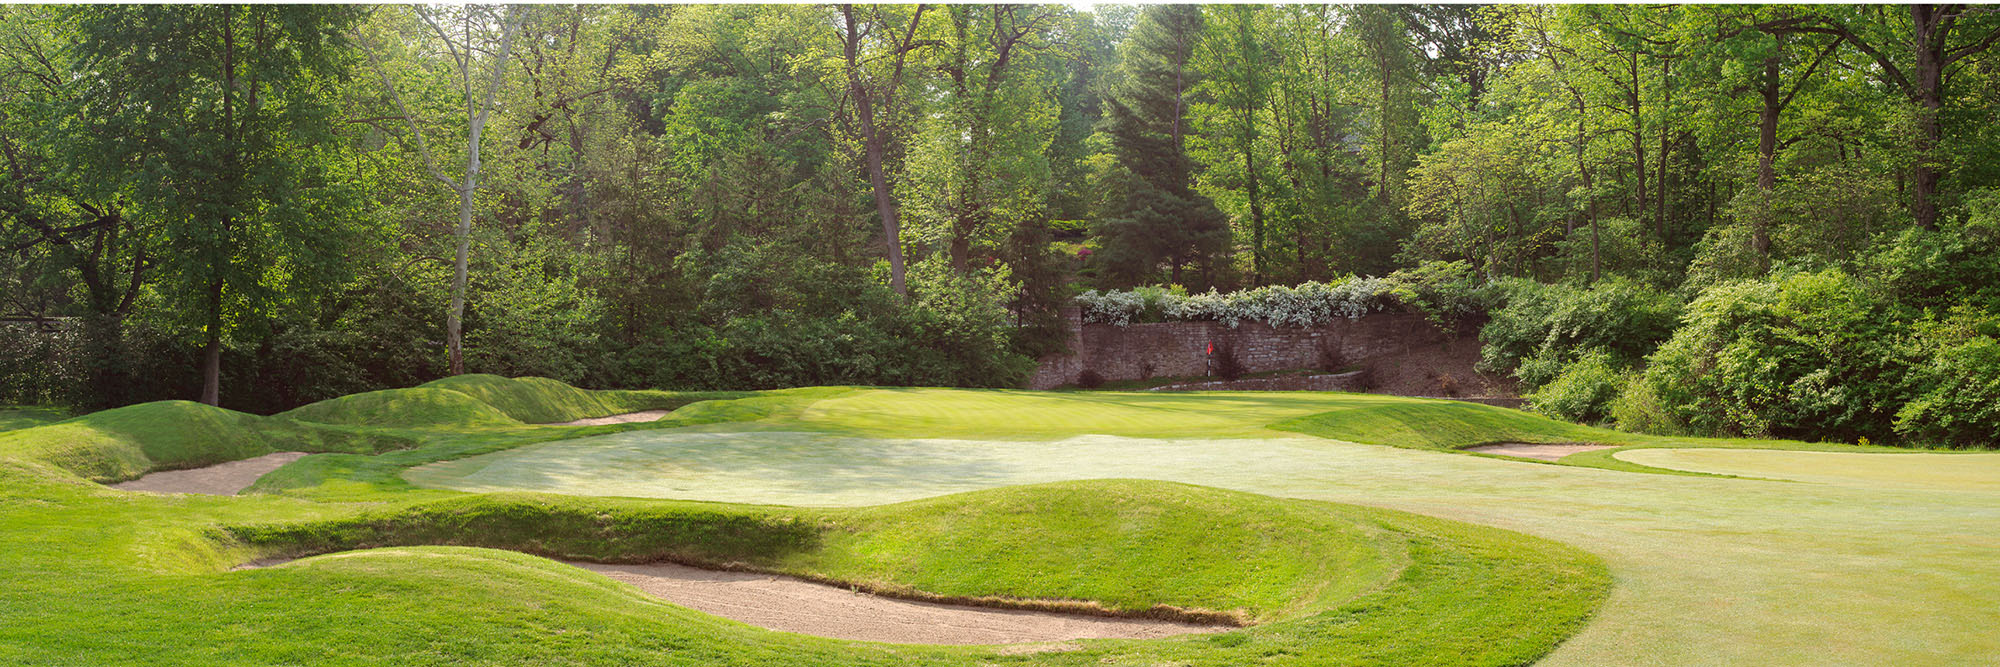 Golf Course Image - St. Louis Country Club No. 8